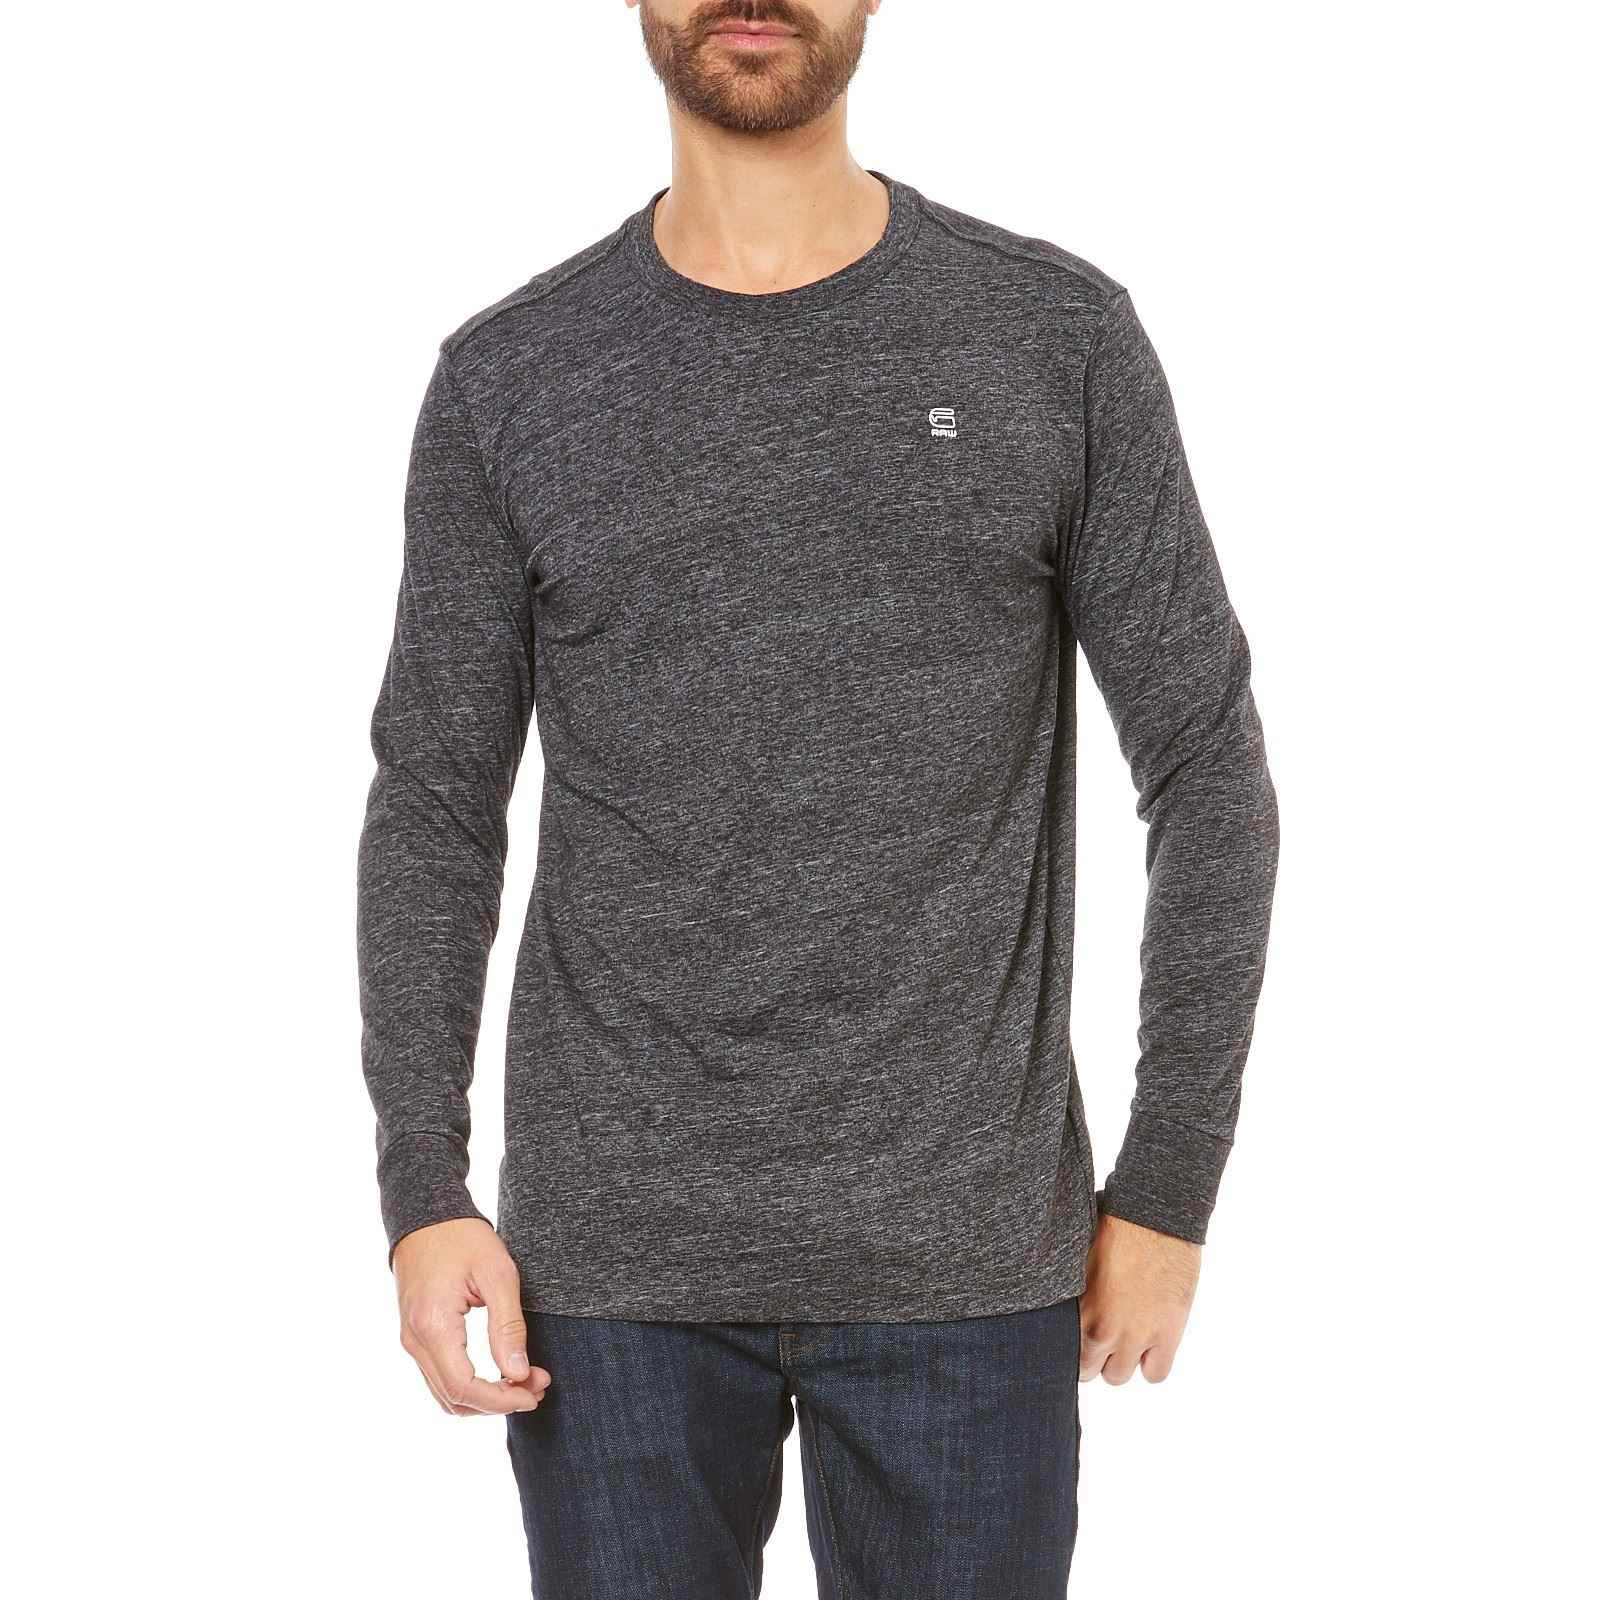 G Star Classic - T-shirt manches longues - gris